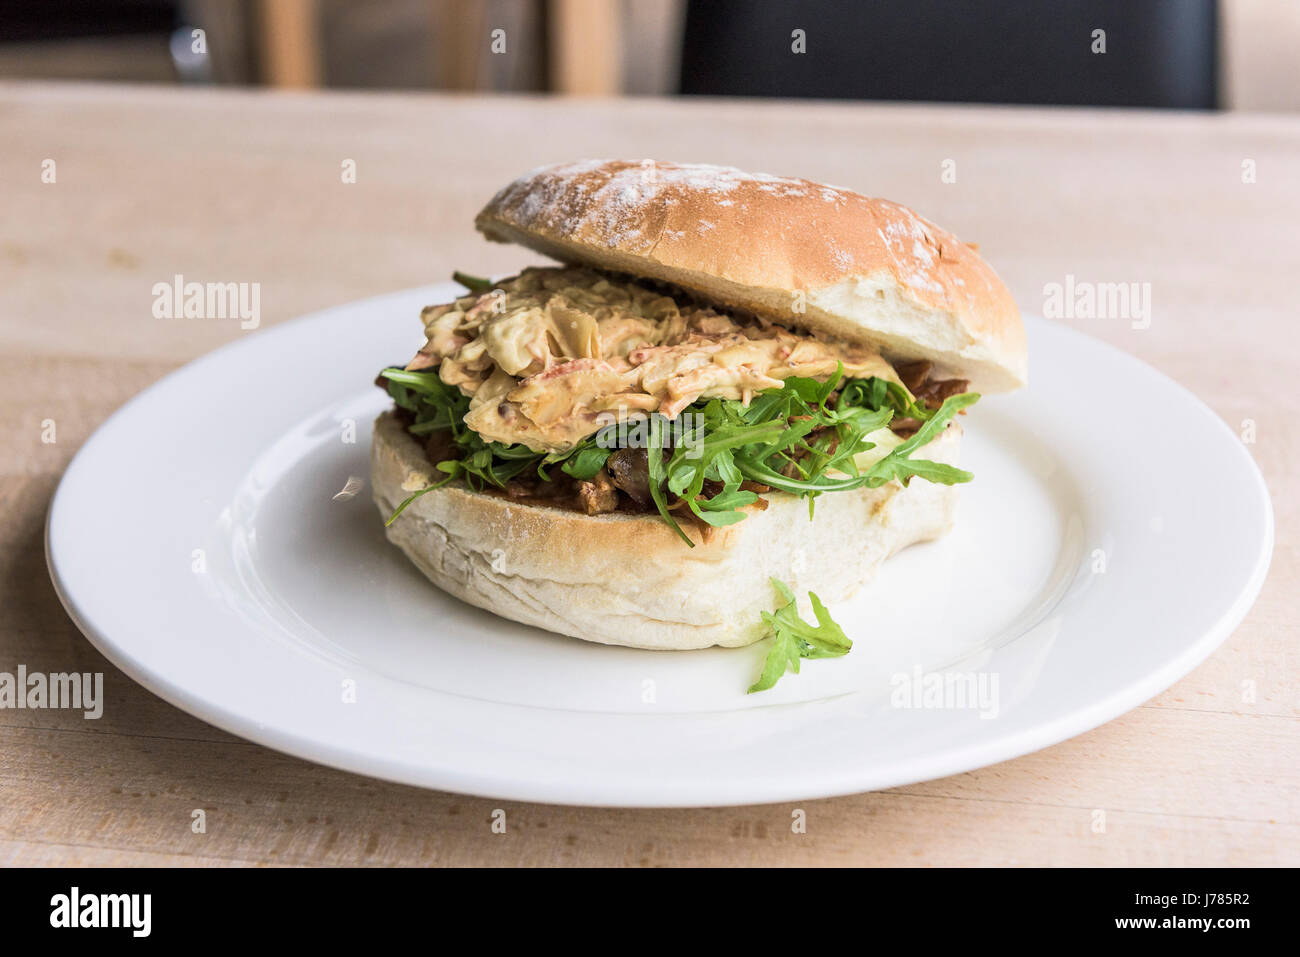 Pulled Pork in a roll; Food; Restaurant; Meal; Appetising; Appetizing; Plate - Stock Image